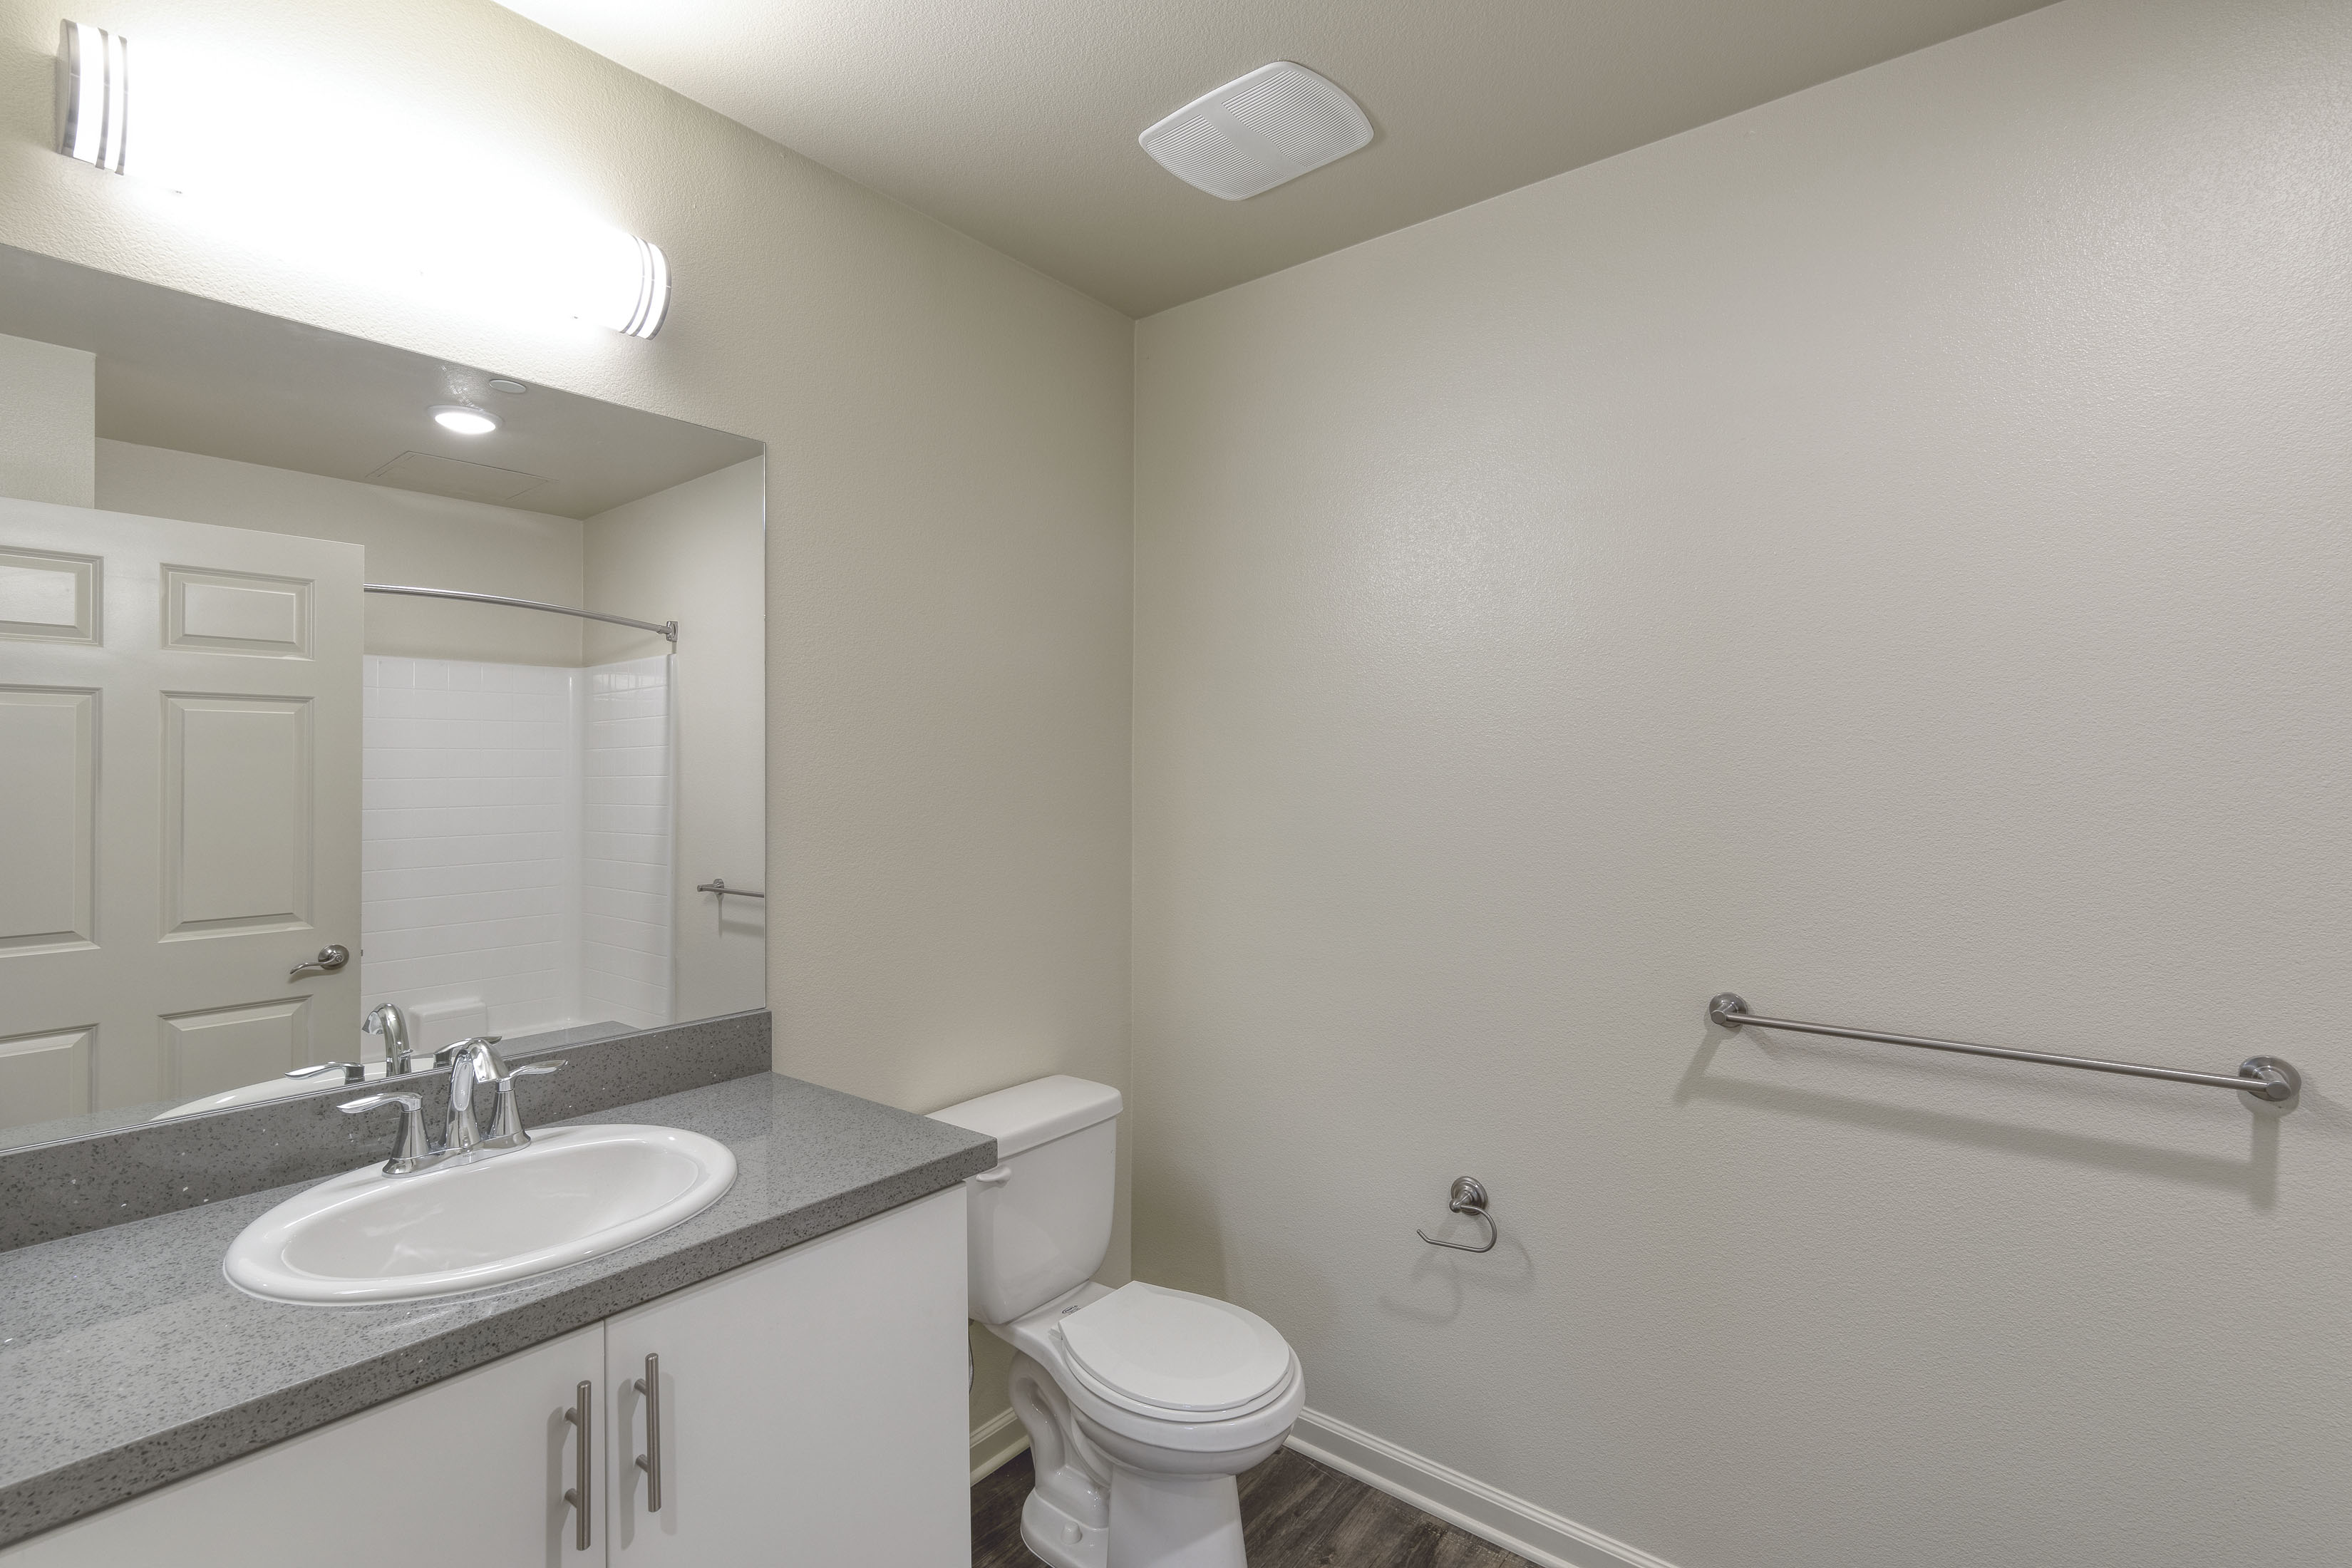 C&C_Unit101_Bathroom1_0120a-11x8